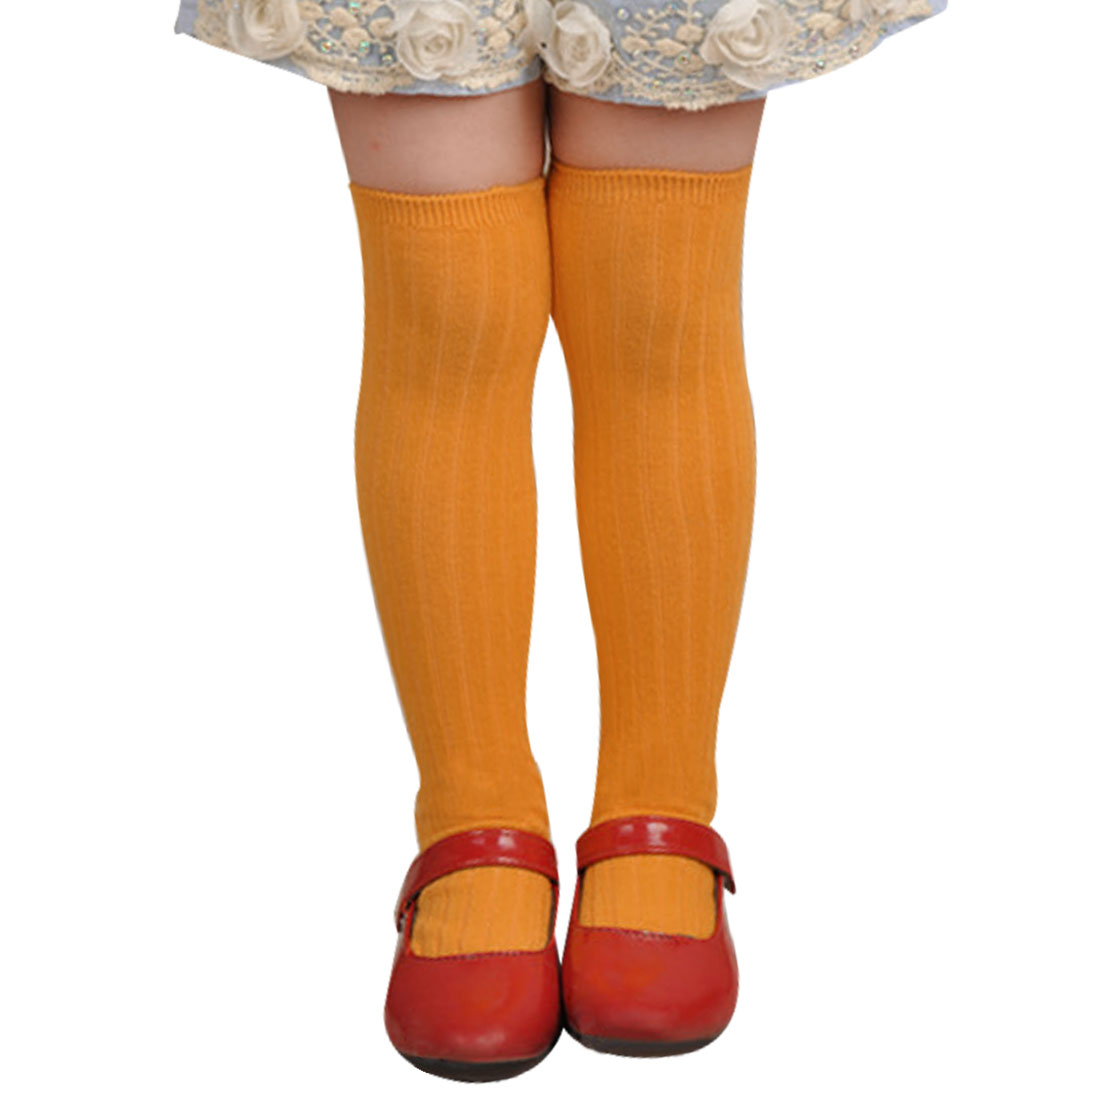 Elastic Cuff Ribbed Design Solid Orange Mid-Calf Length Socks for Girls